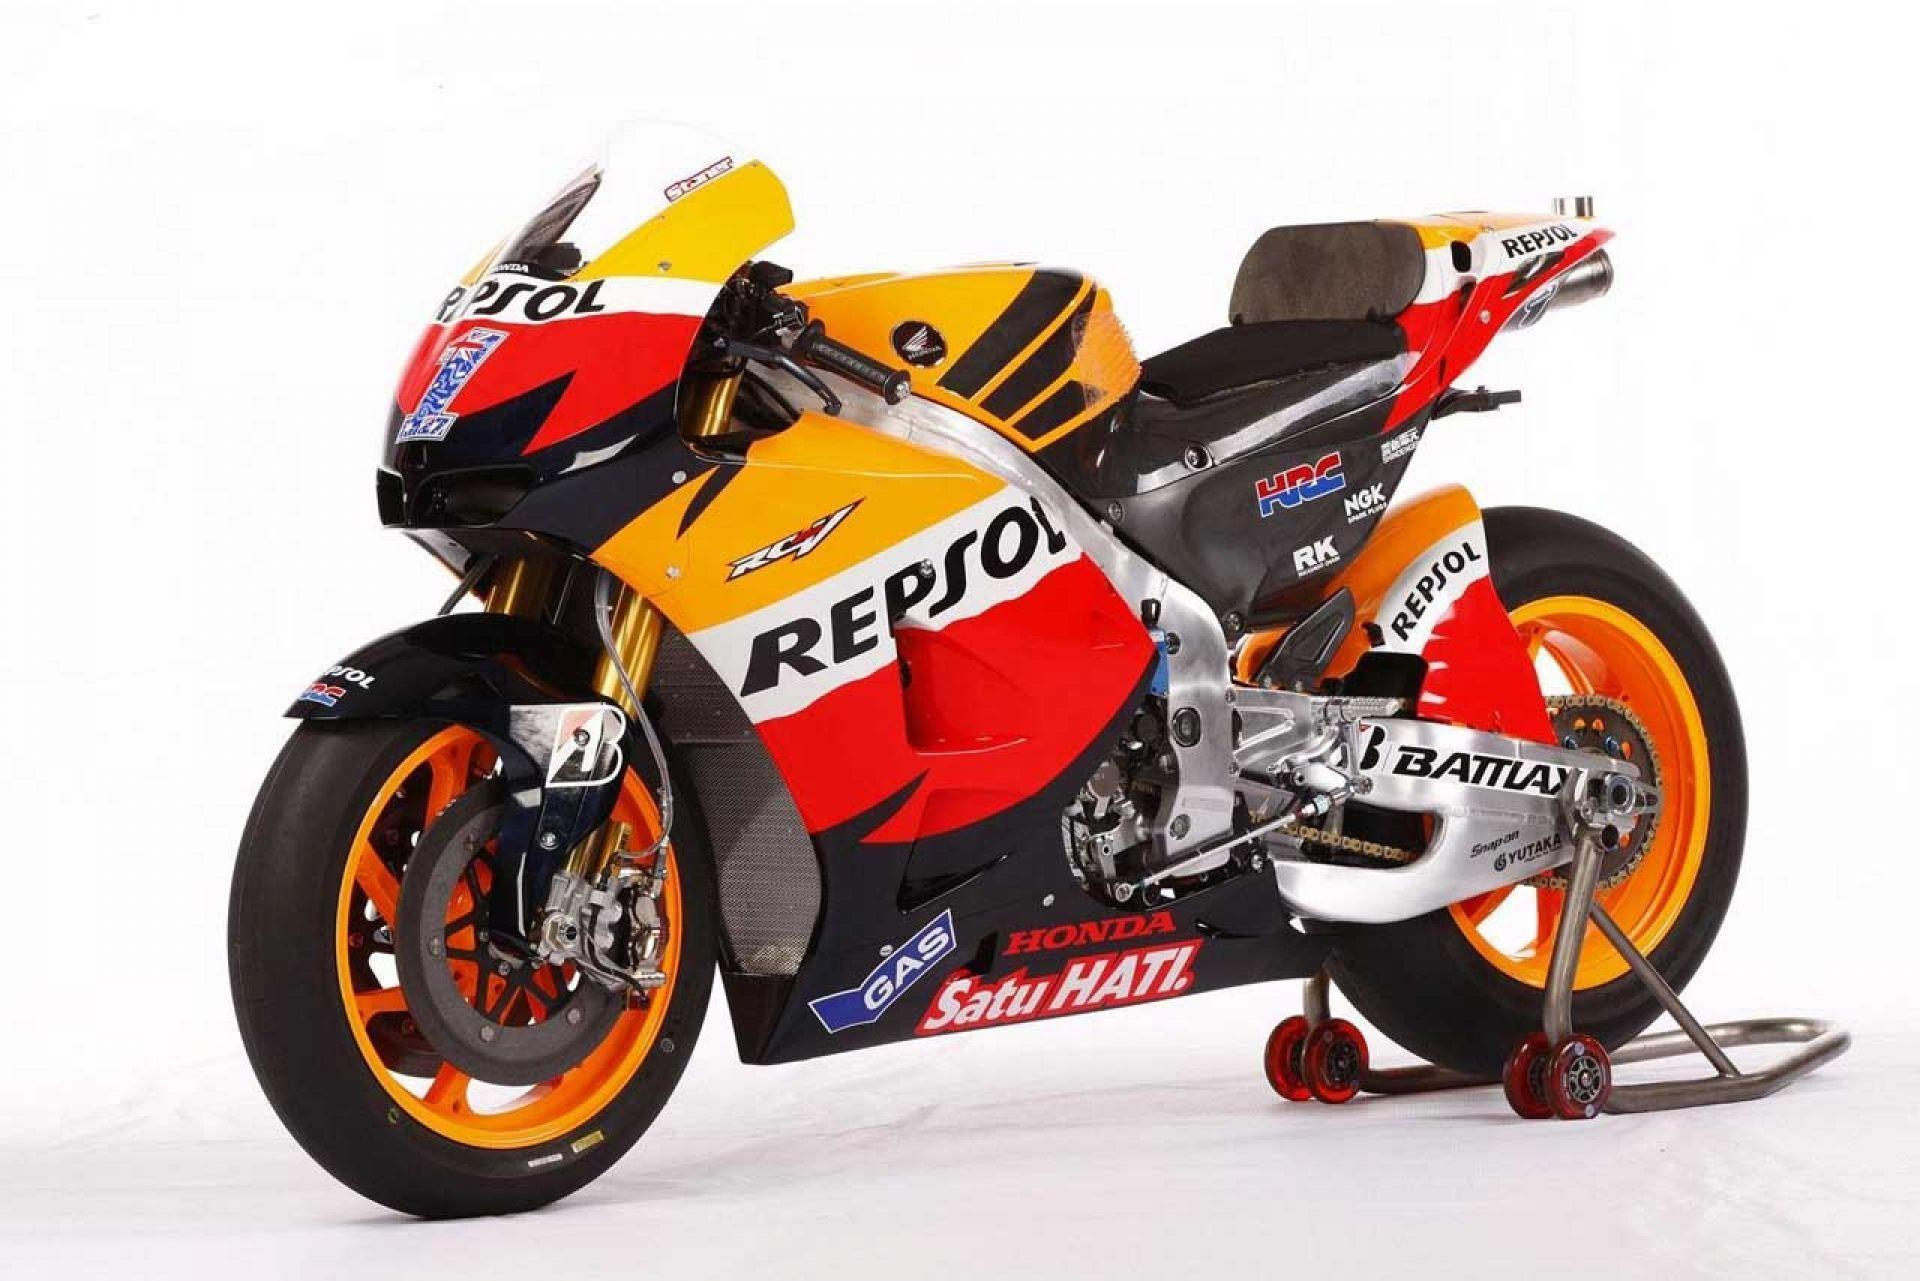 Honda Repsol Wallpaper Motorcycle: CBR1000RR Repsol 2015 HD Wallpapers